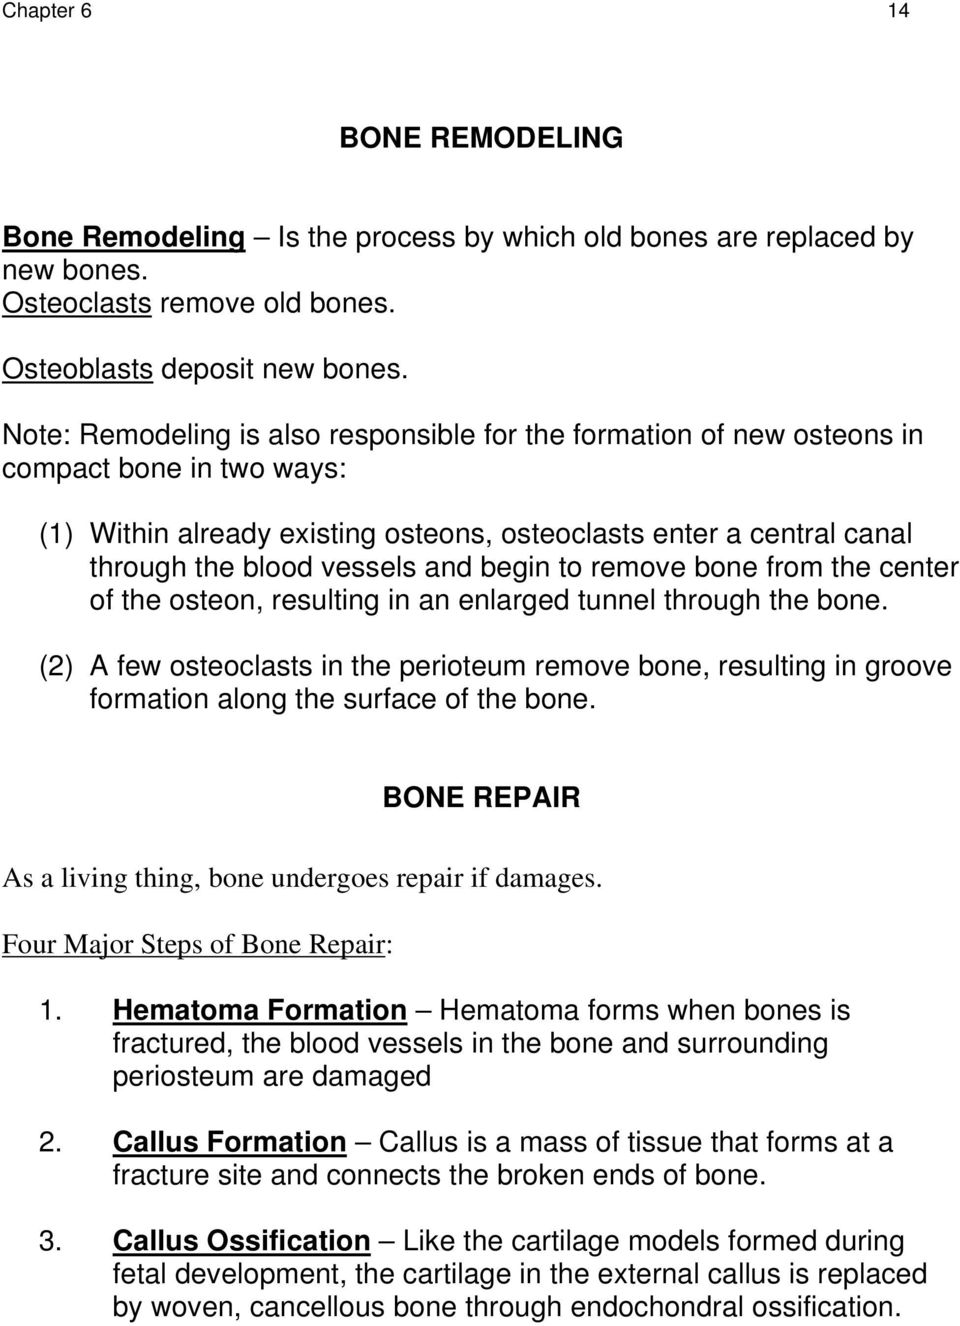 begin to remove bone from the center of the osteon, resulting in an enlarged tunnel through the bone.